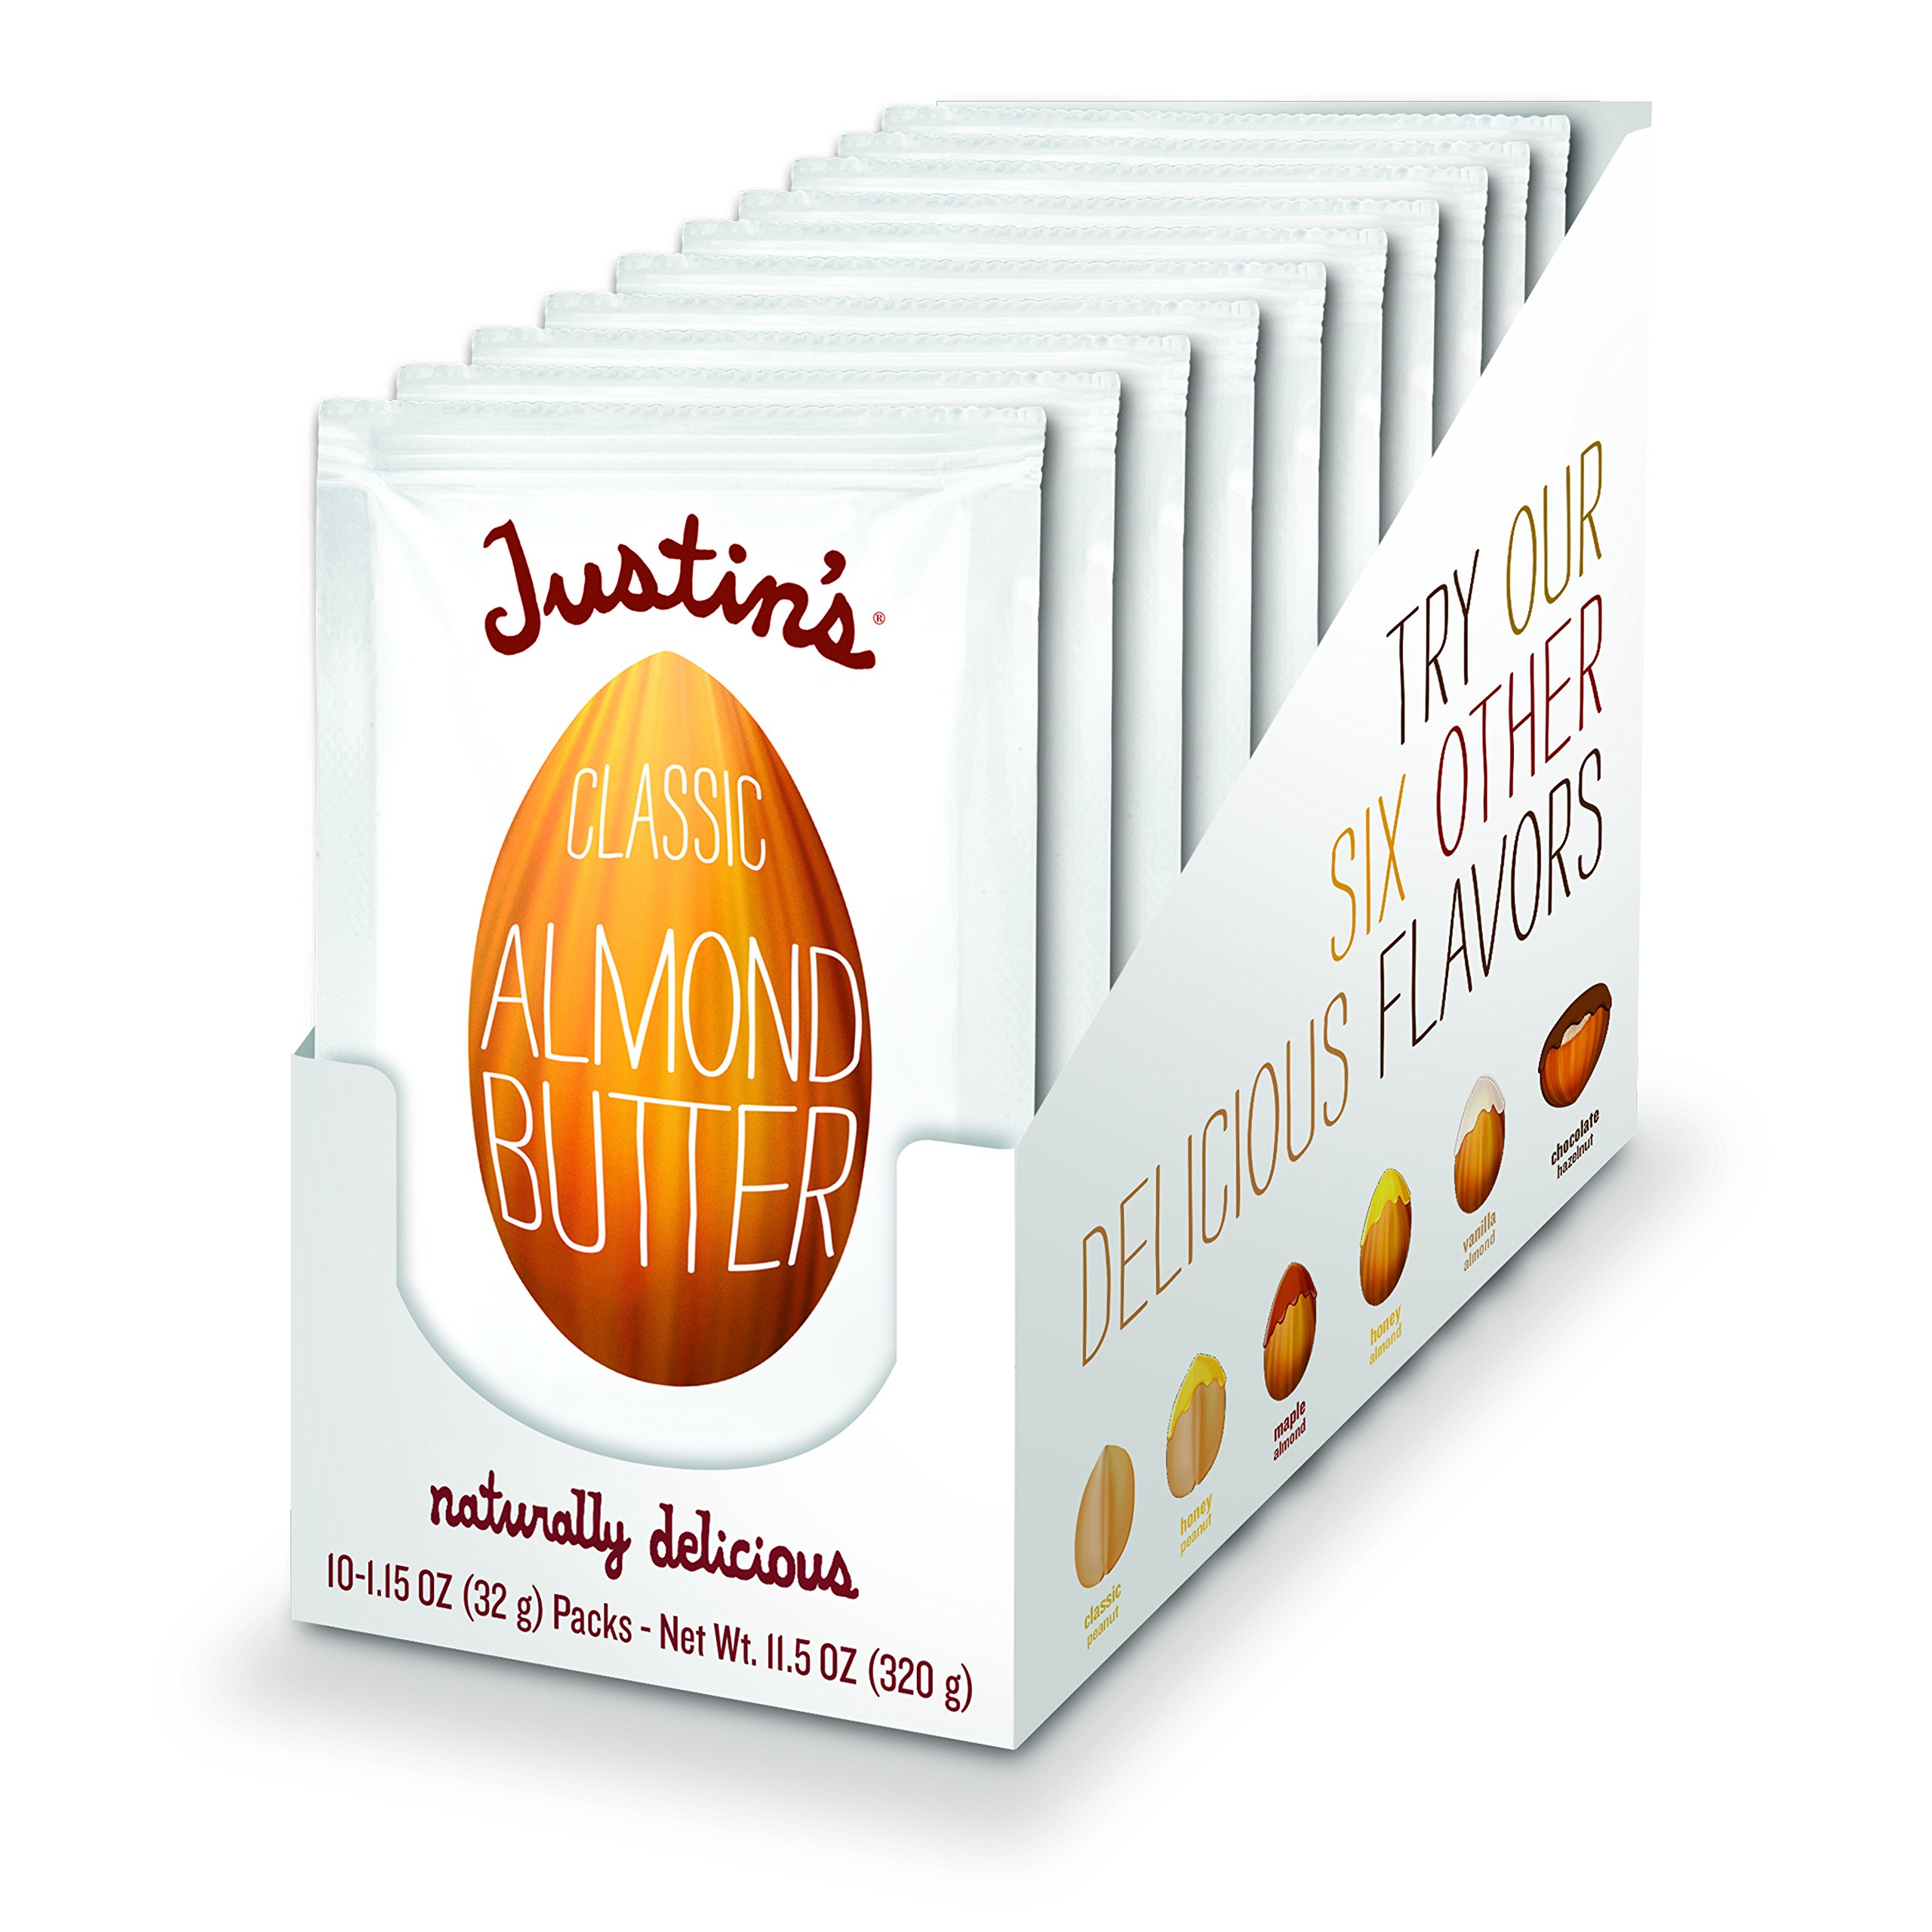 Classic Almond Butter Squeeze Packs by Justin's, Only Two Ingredients, Gluten-free, Non-GMO, Vegan, Responsibly Sourced, Pack of 10 (1.15oz each)